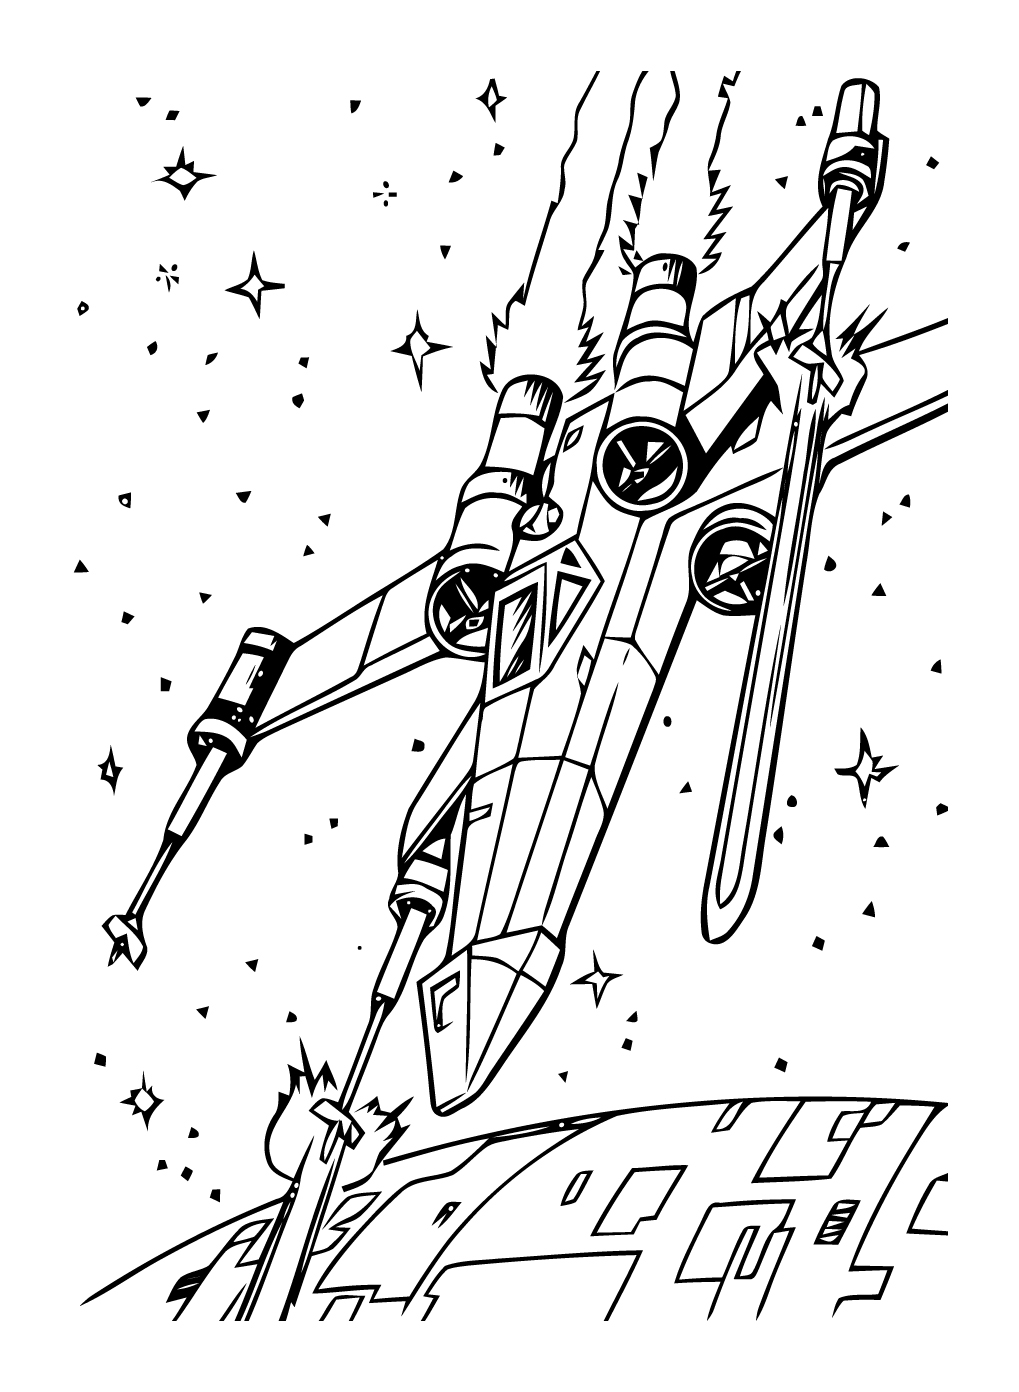 star wars coloring pages for kids star wars to print star wars kids coloring pages pages star for coloring wars kids